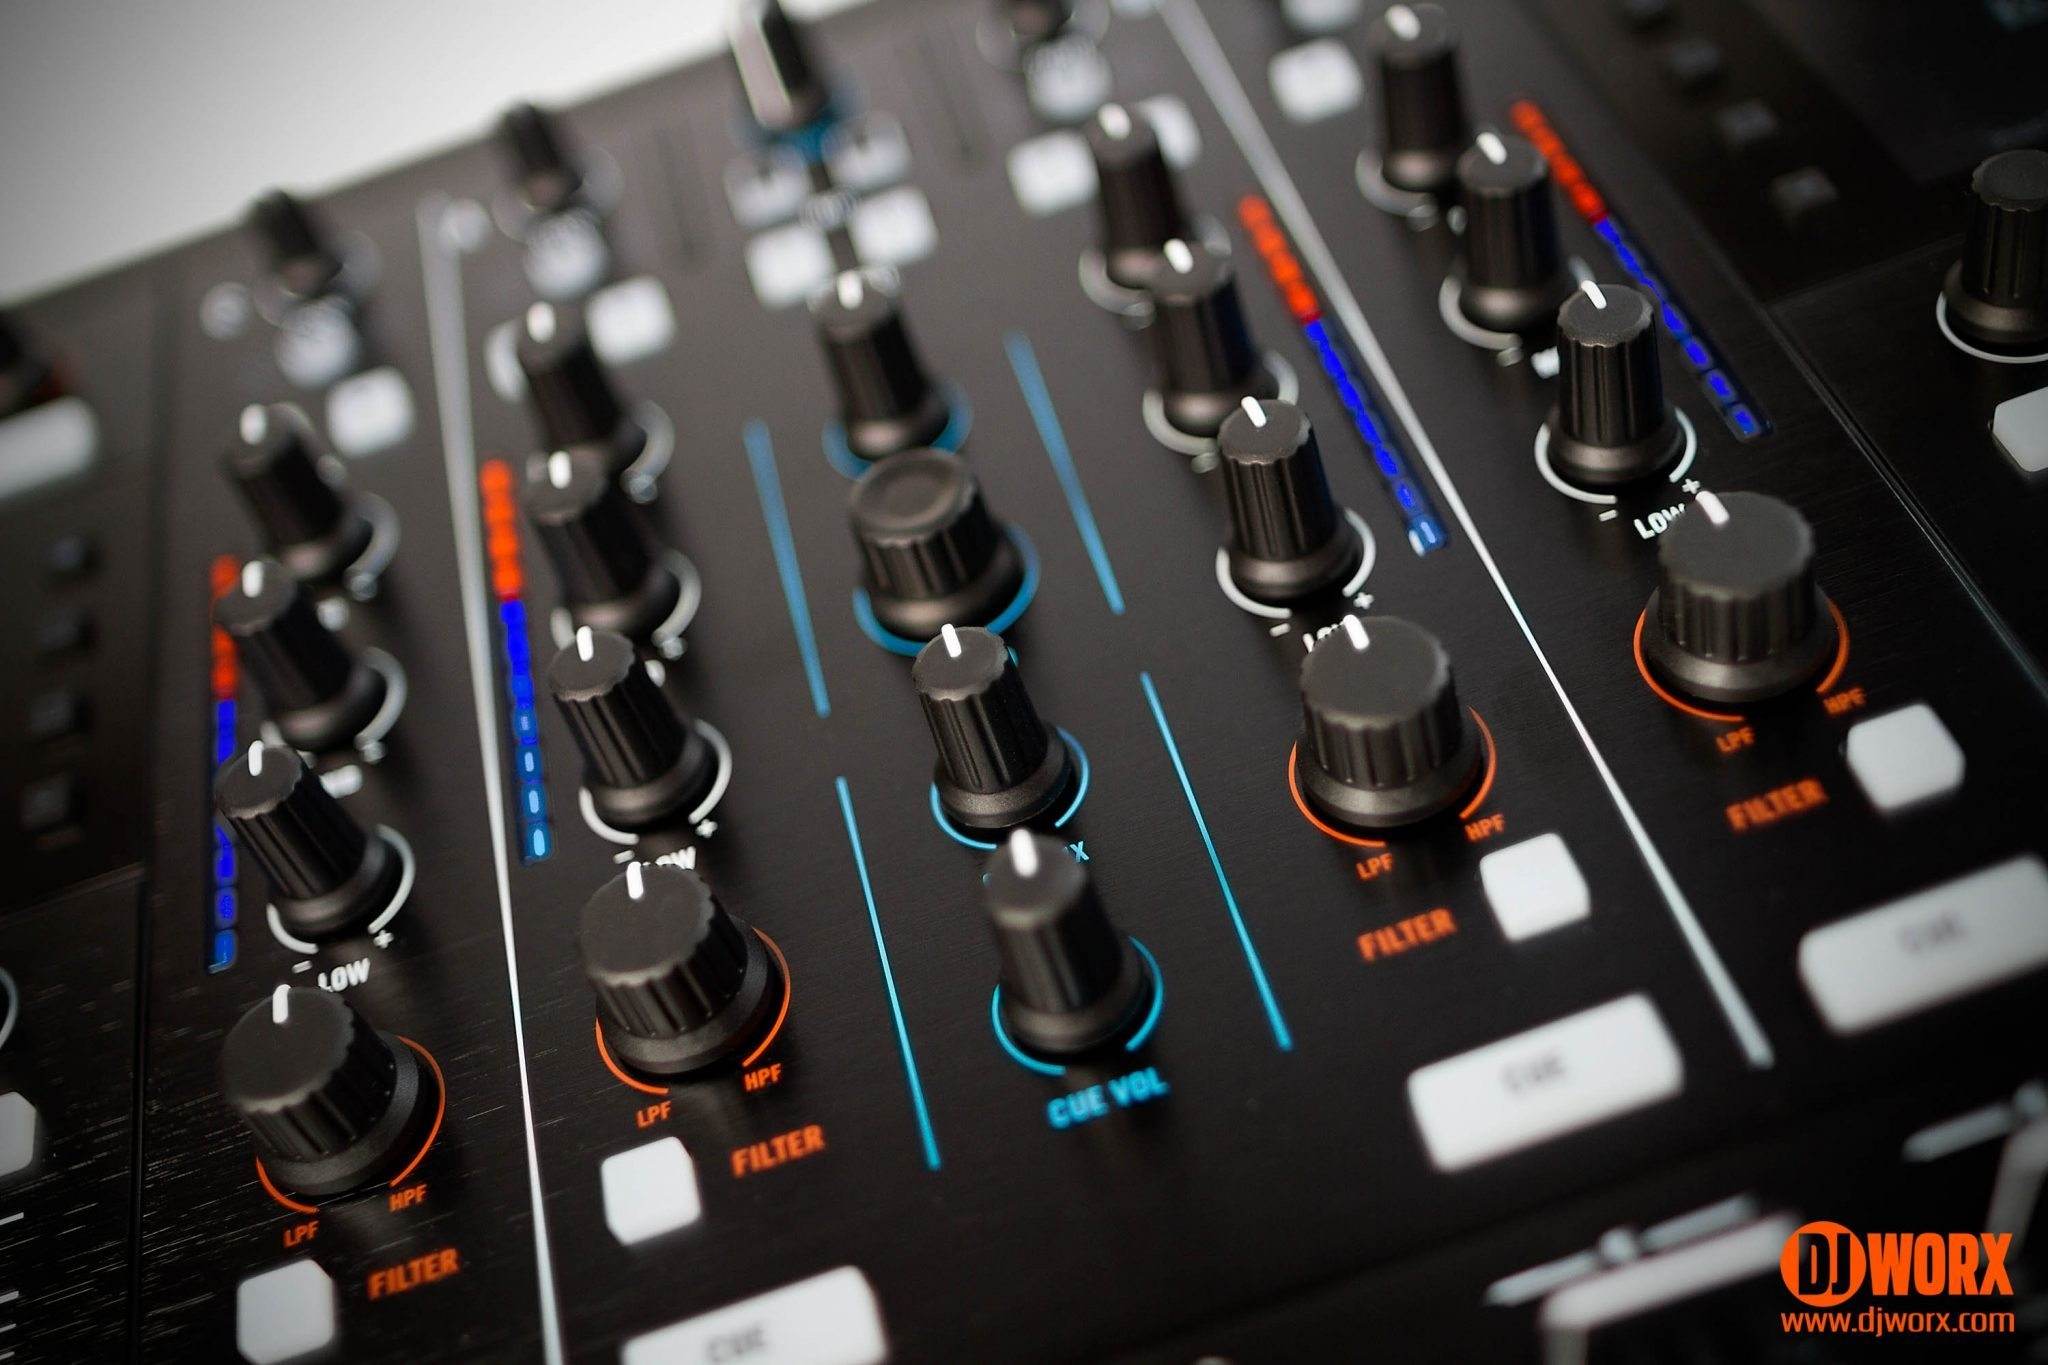 Native Instruments Traktor Kontrol S8 controller review (21)